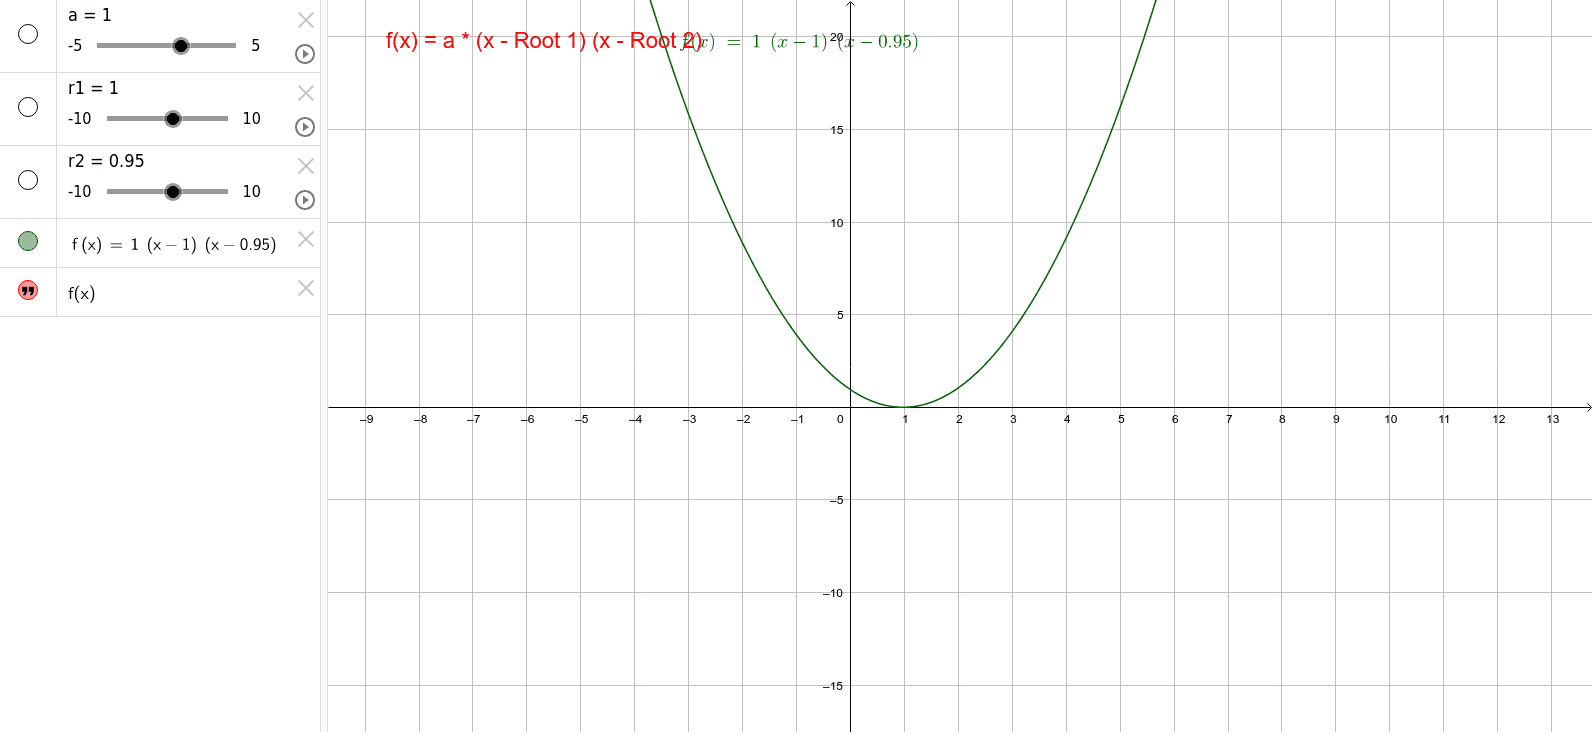 Change the sliders to see the effect of the leading coefficient (a) and the two roots.